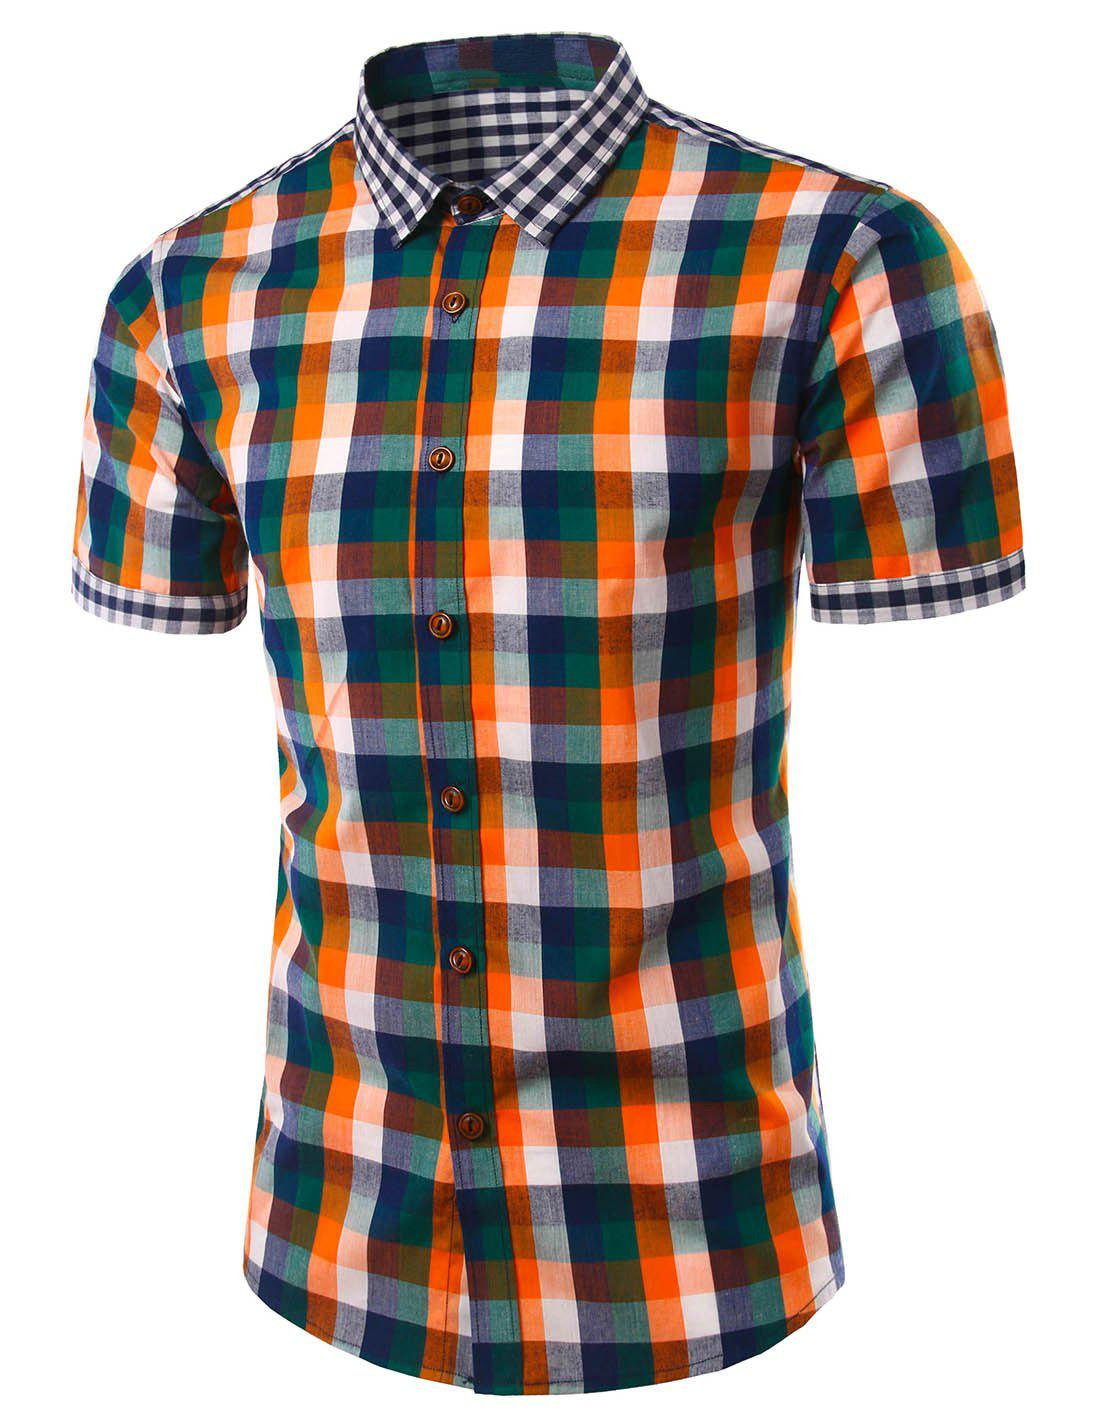 Slim Fit Turn Down Collar Plaid Short Sleeves Shirts For Men - JACINTH L